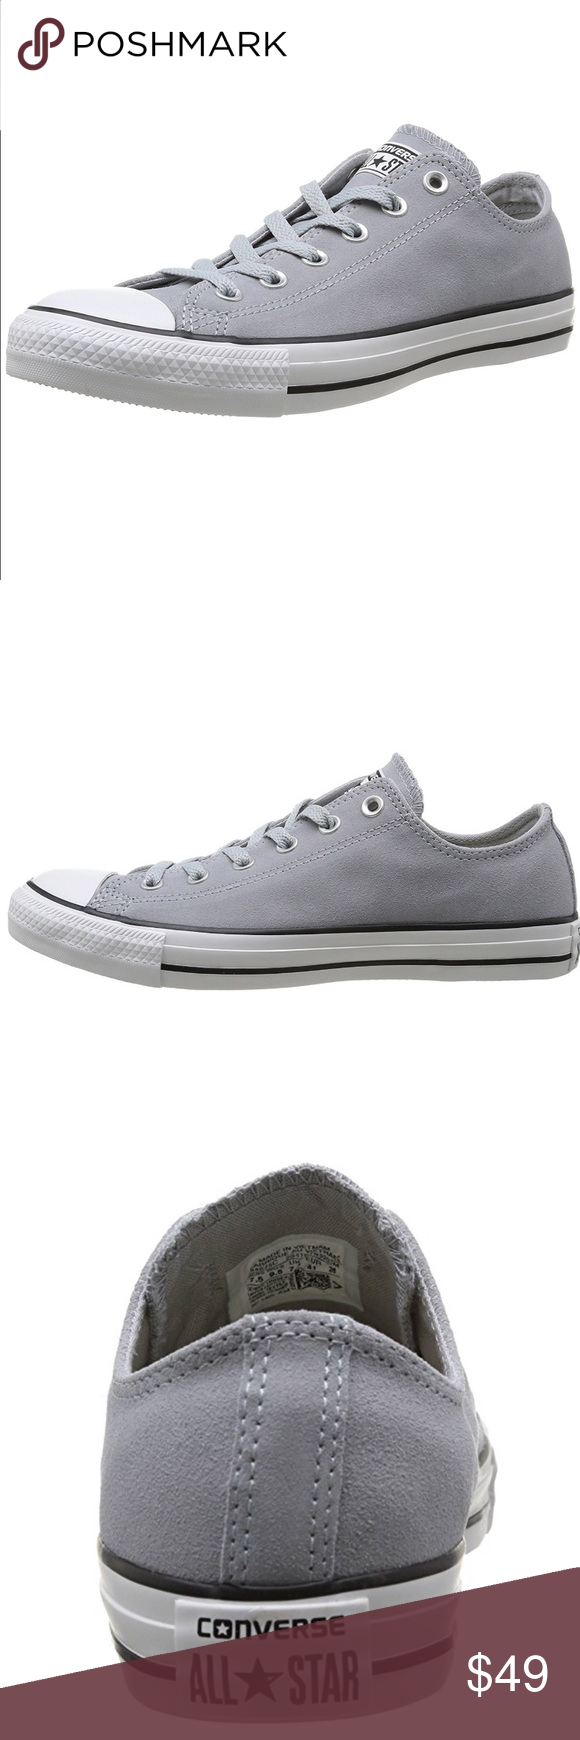 1d5e0c2af4b Worn 1x too big these run 1 2 size large Converse Shoes Sneakers. Suede Converse  Gray Converse Chuck Taylor All Star Low Top Lucky Excellent used condition  ...